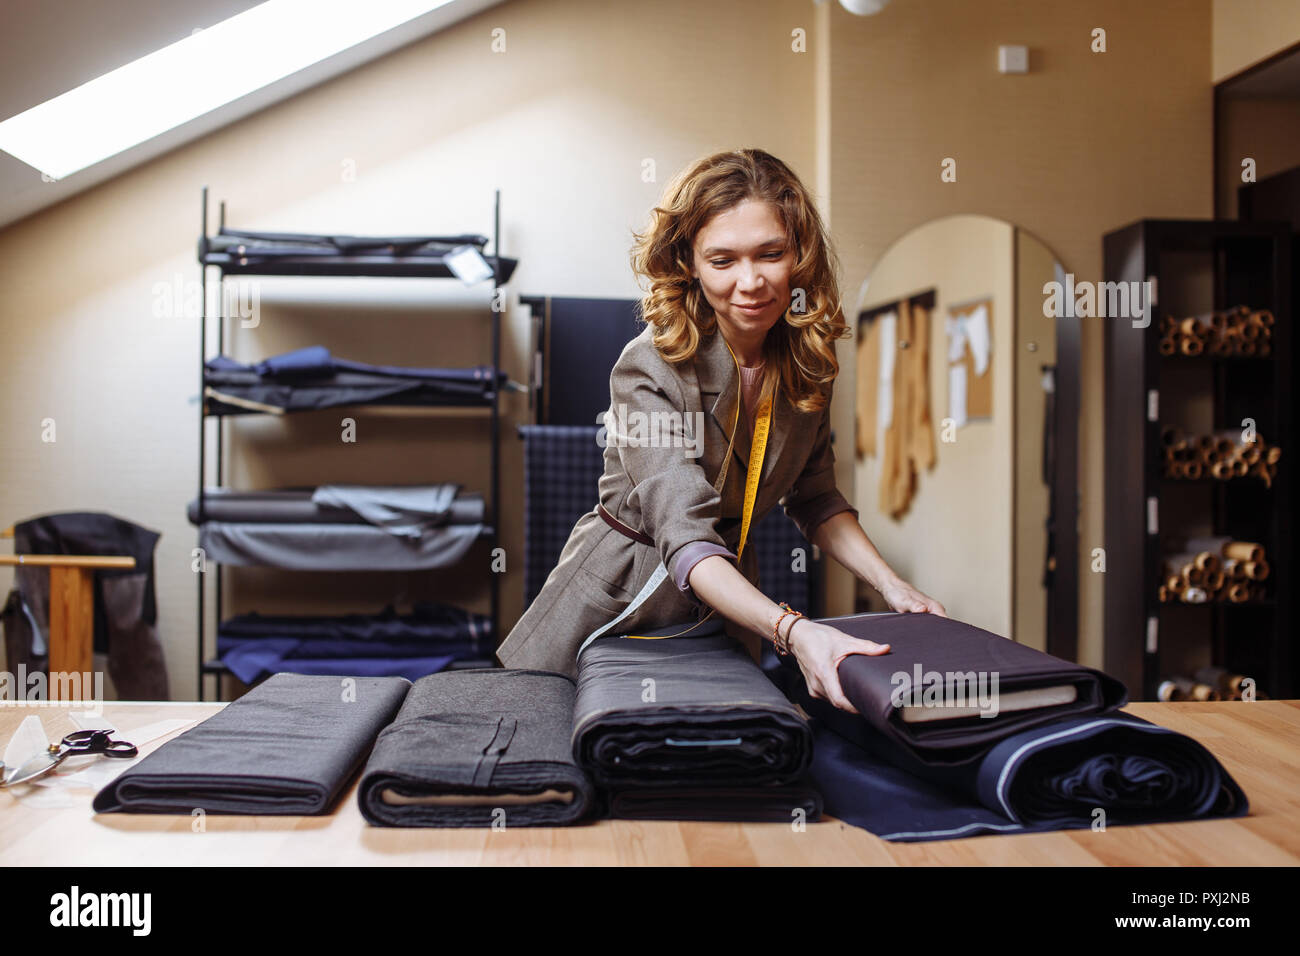 Female tailor choosing fabric for pattern cutting. Men's Wear industry, tailoring process Concept - Stock Image